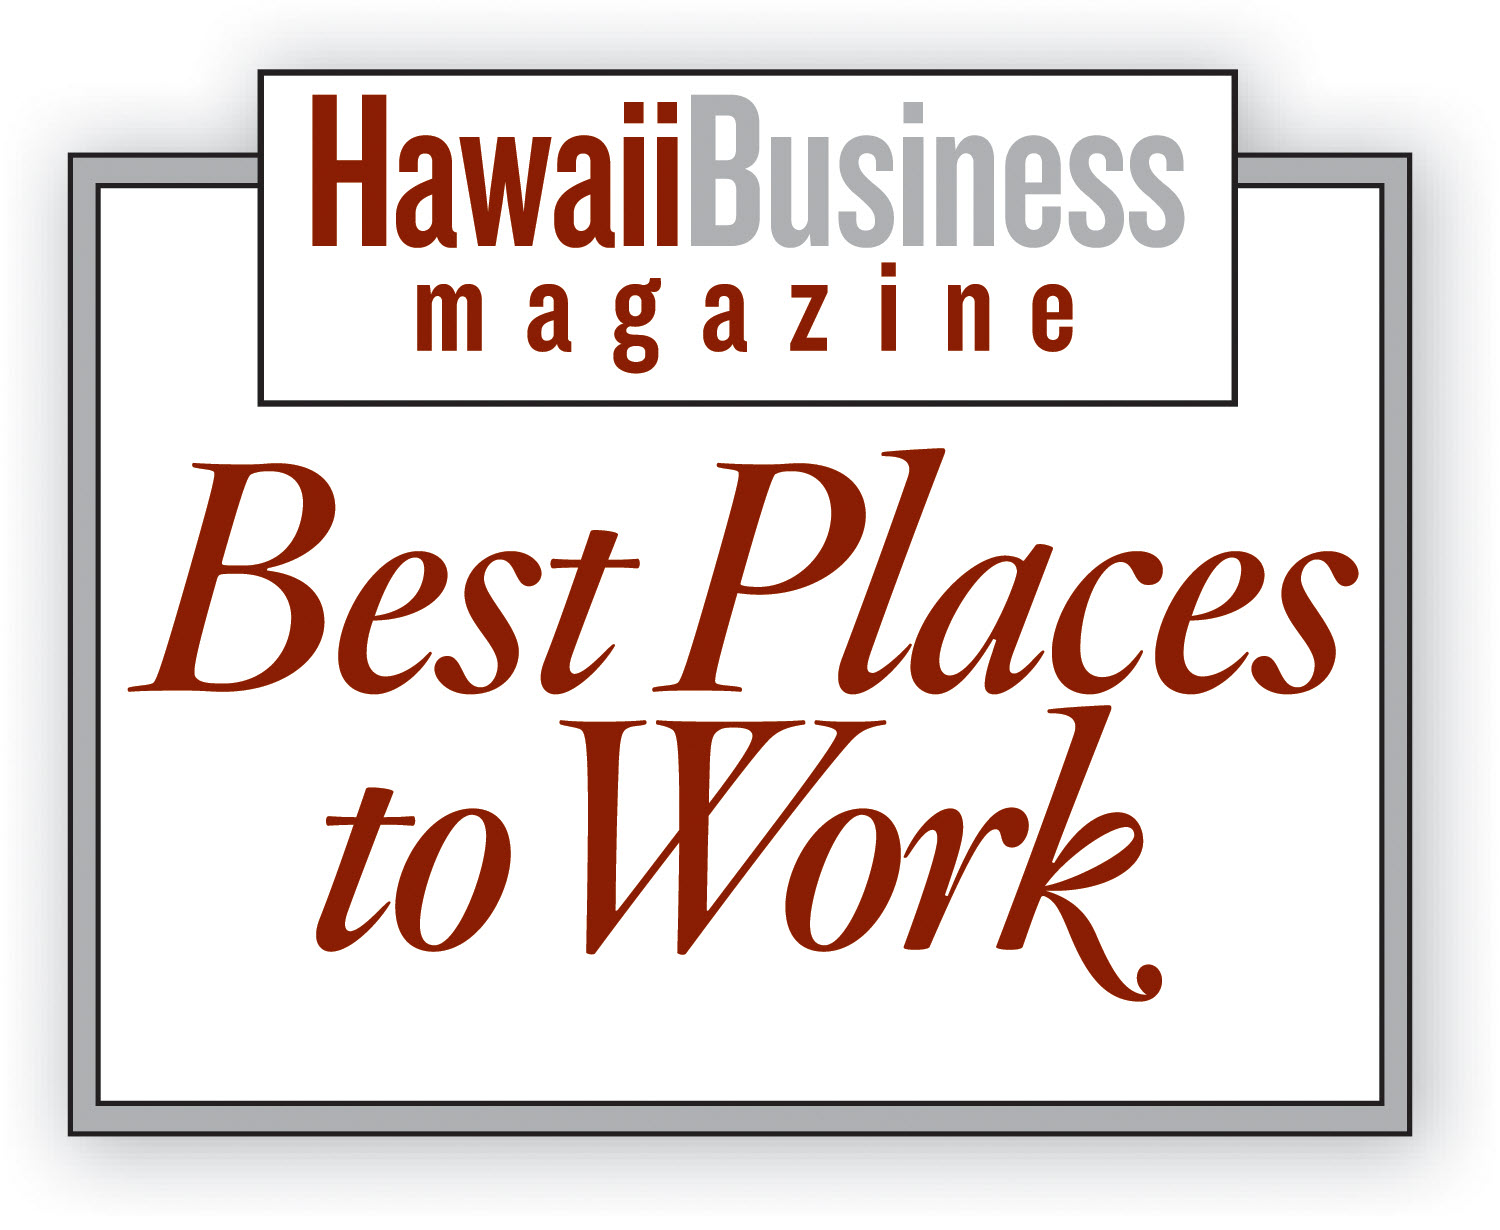 Hawaii-Business-Magazine-Best-Places-to-Work